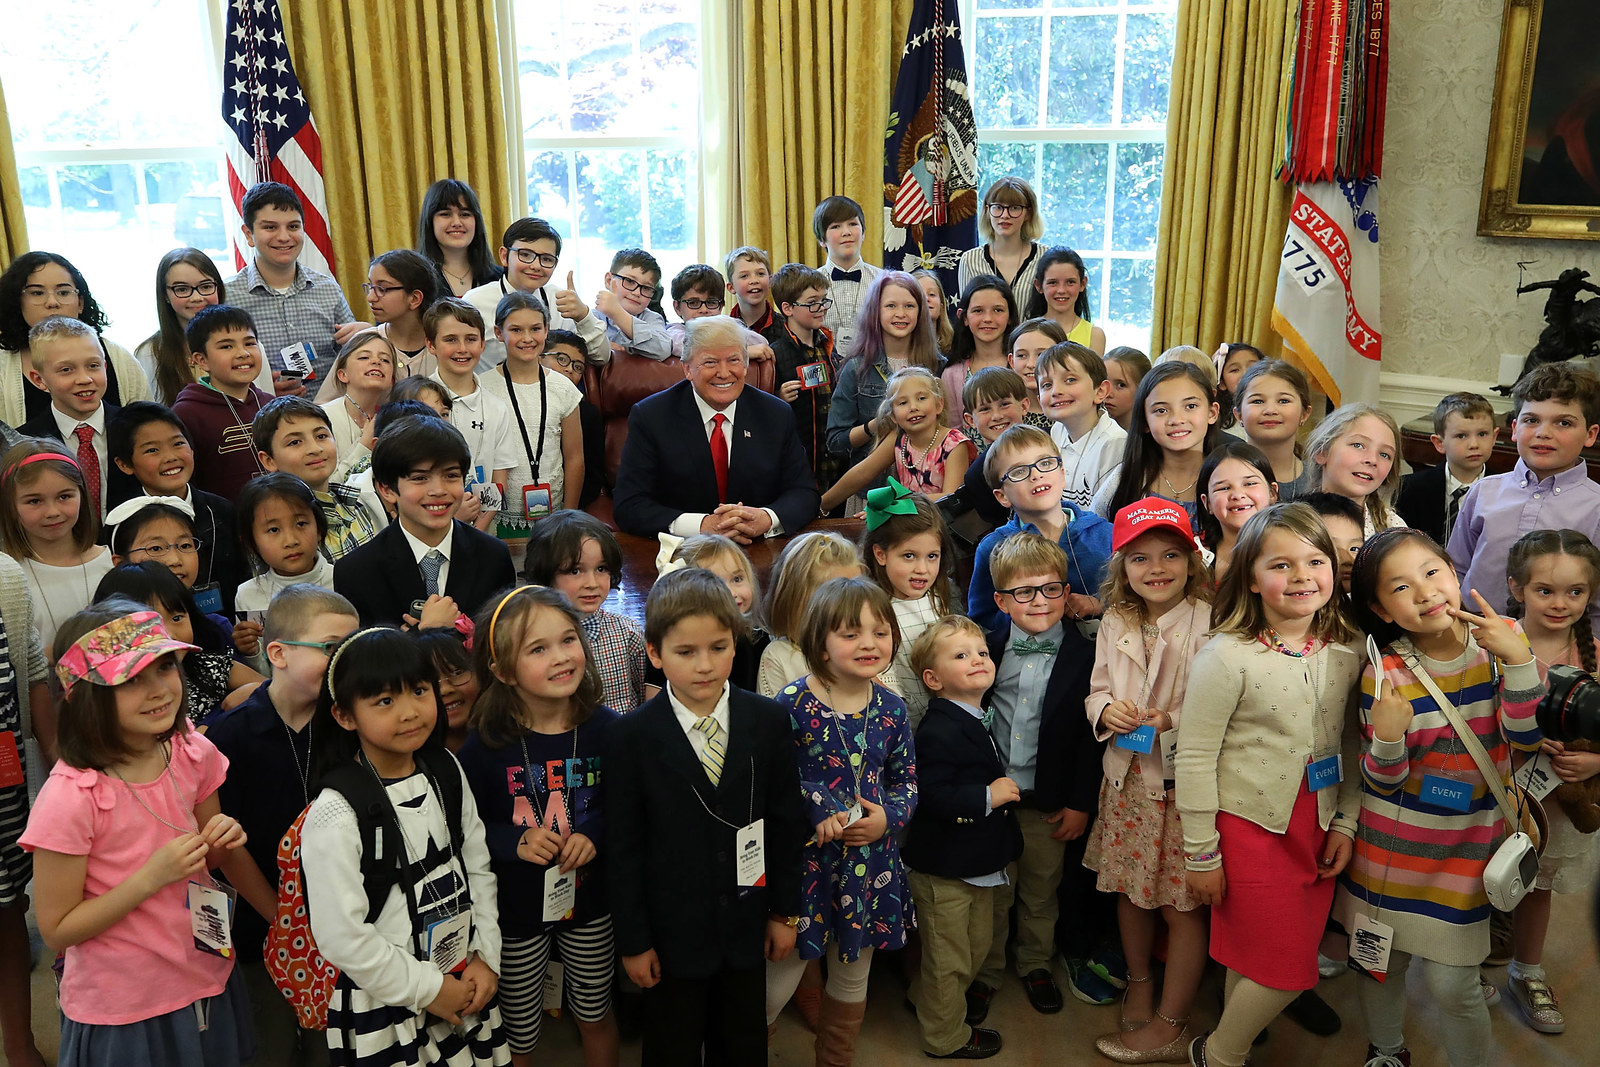 Trump is surrounded by the children of members of the media and White House staff during Take Your Child To Work Day on April 26.